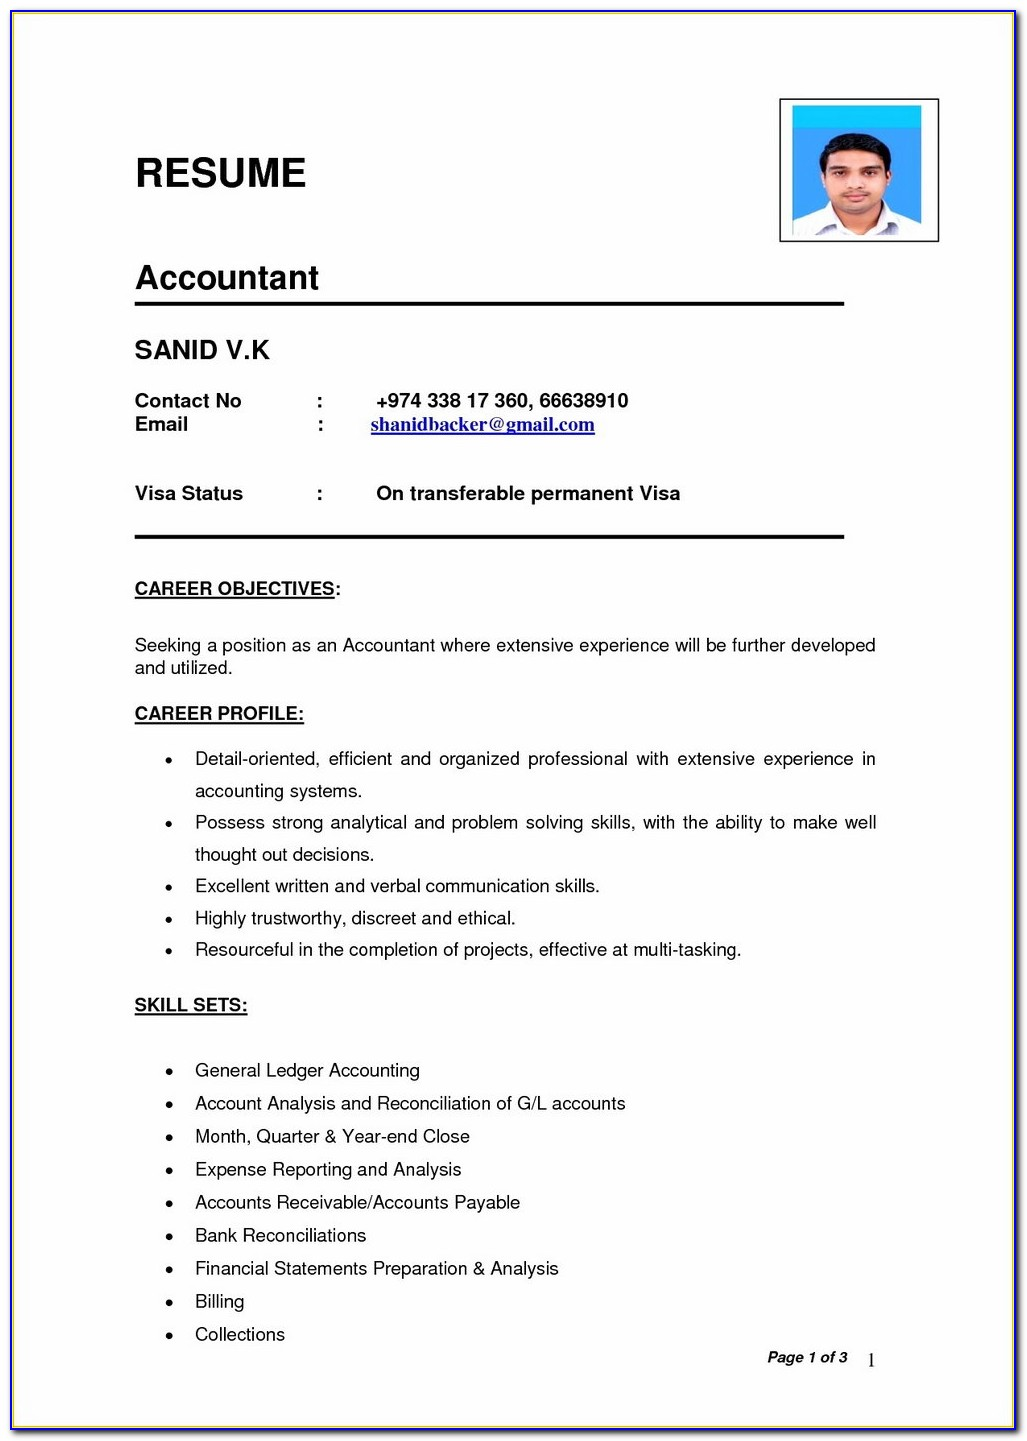 Download Resume Templates In Word Format